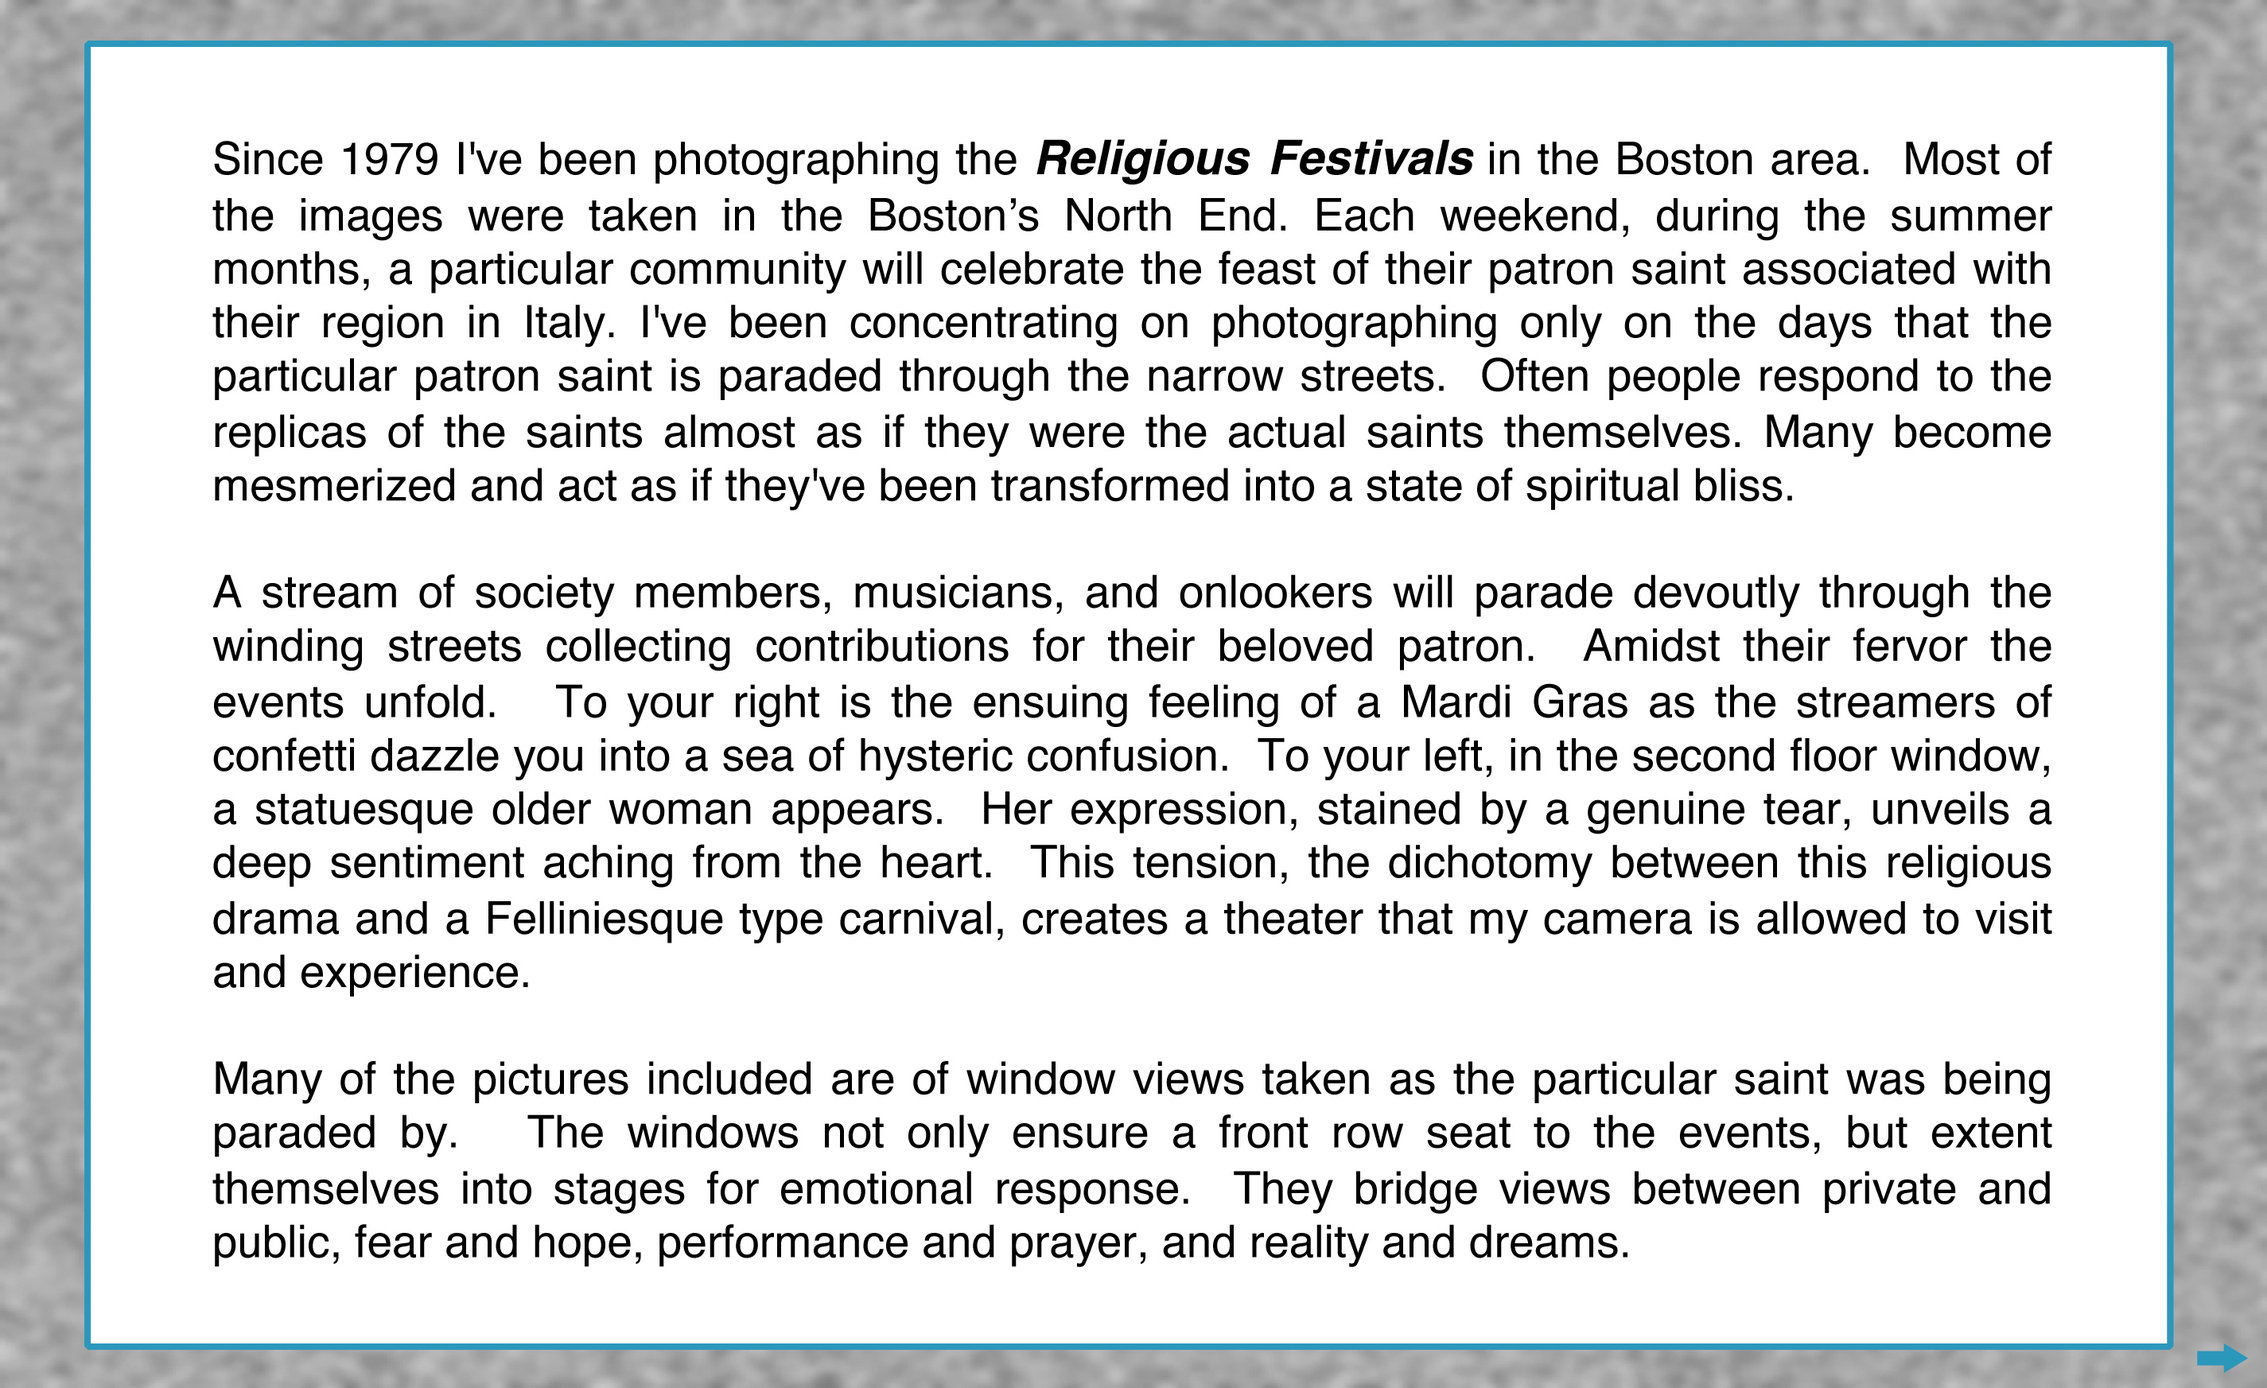 Religious Festivals Statement smaller.png